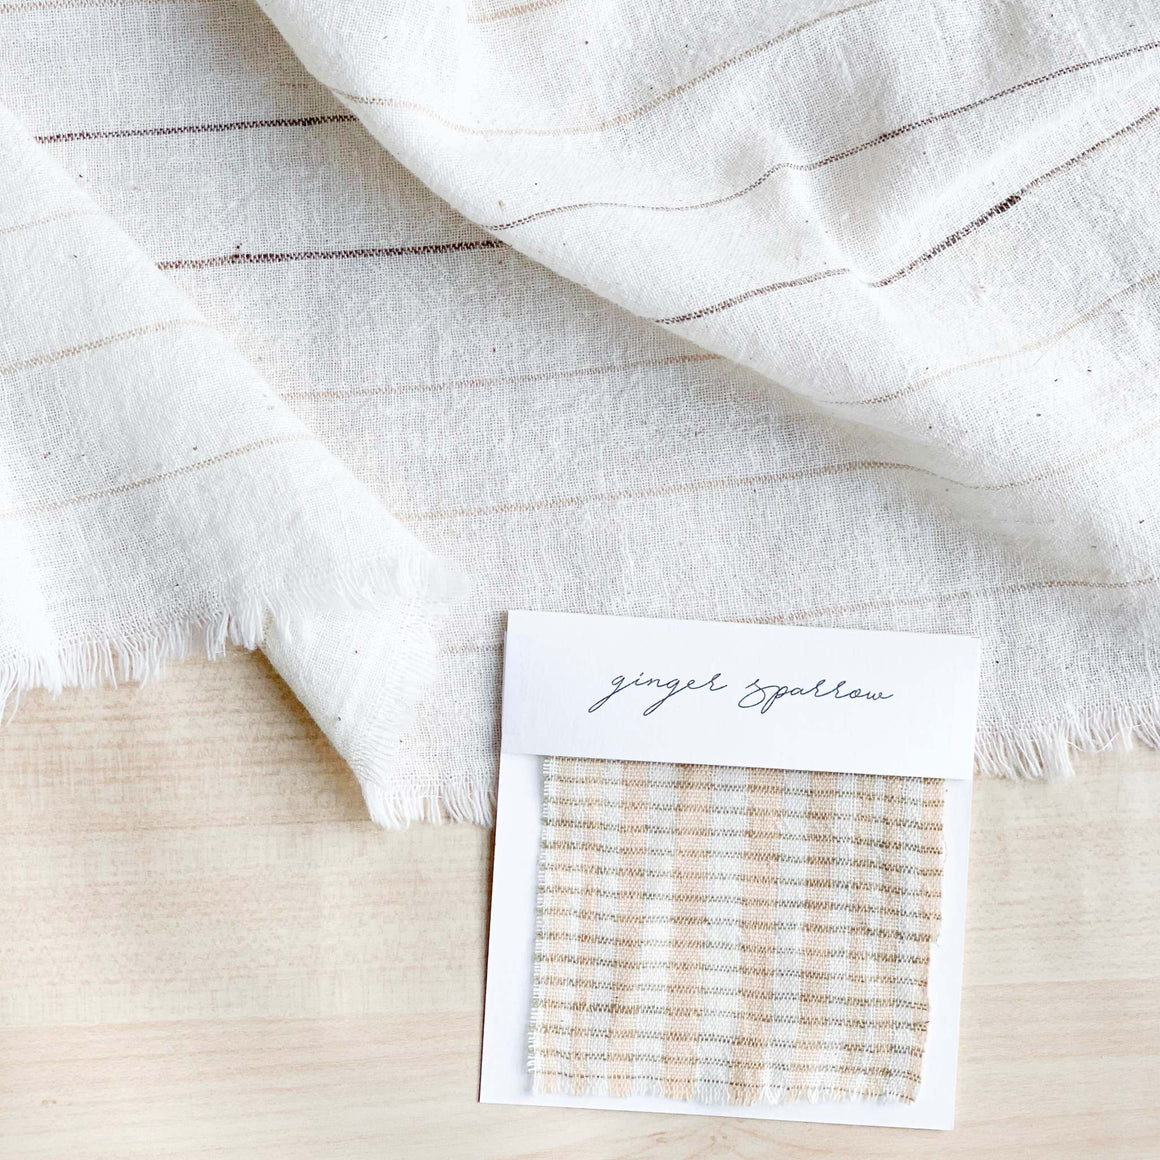 Handwoven Textile by Ginger Sparrow, a modern home decor brand. Featuring a light peach, gold and soft ivory checkered weave, it is light and airy, perfect for #throwpillows #drapes #livingroomdecor #bedroomideas